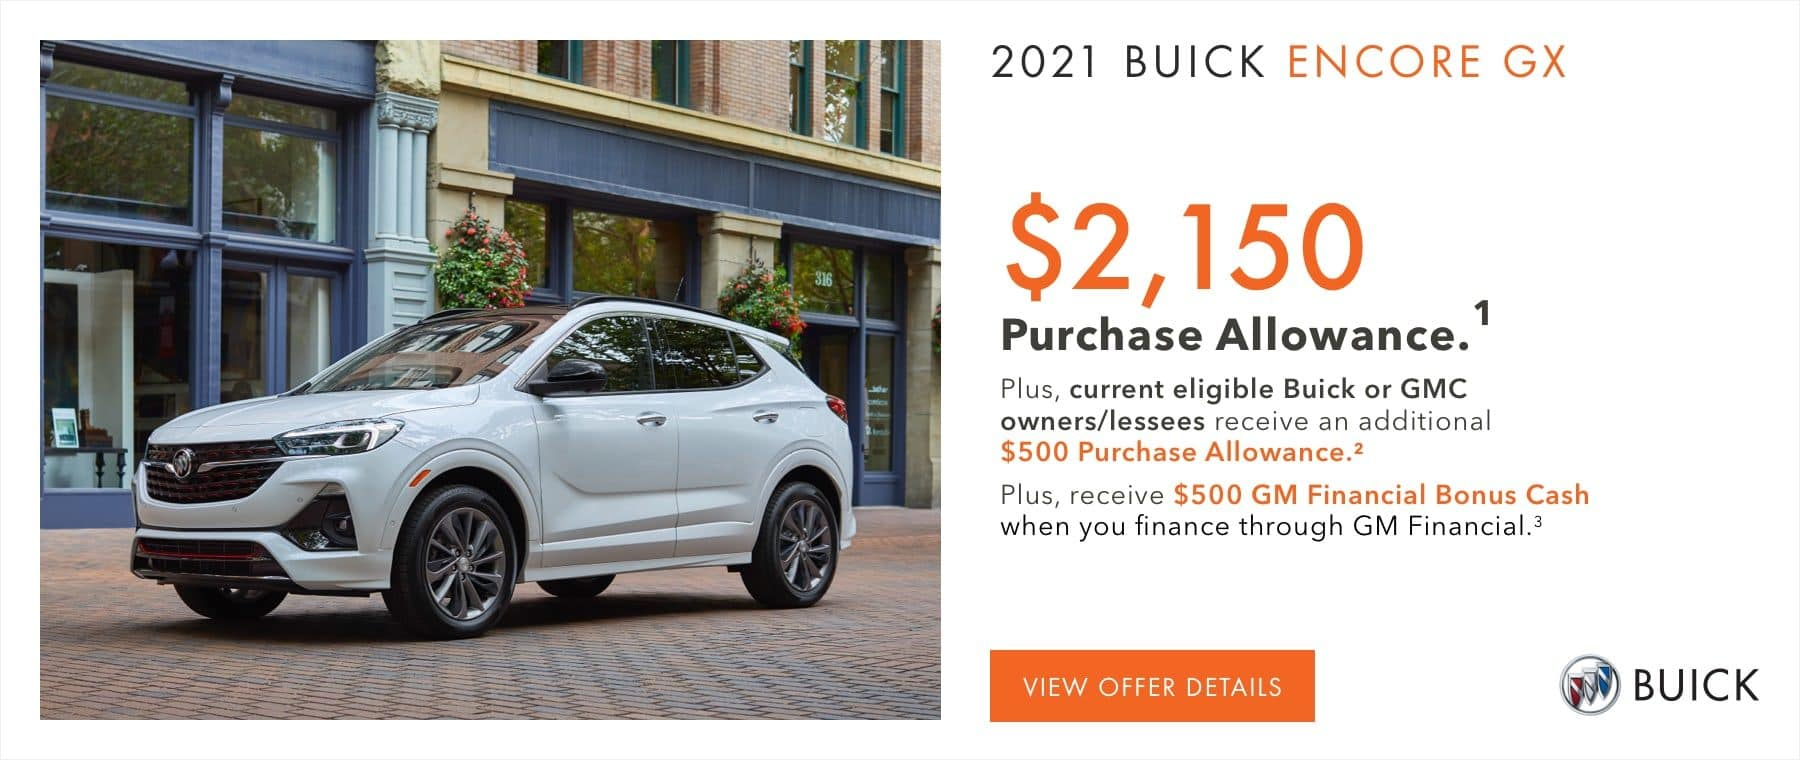 $2,150 Purchase Allowance.1 Plus, current eligible Buick or GMC owners/lessees receive an additional $500 Purchase Allowance.2 Plus, receive $500 GM Financial Bonus Cash when you finance through GM Financial.3